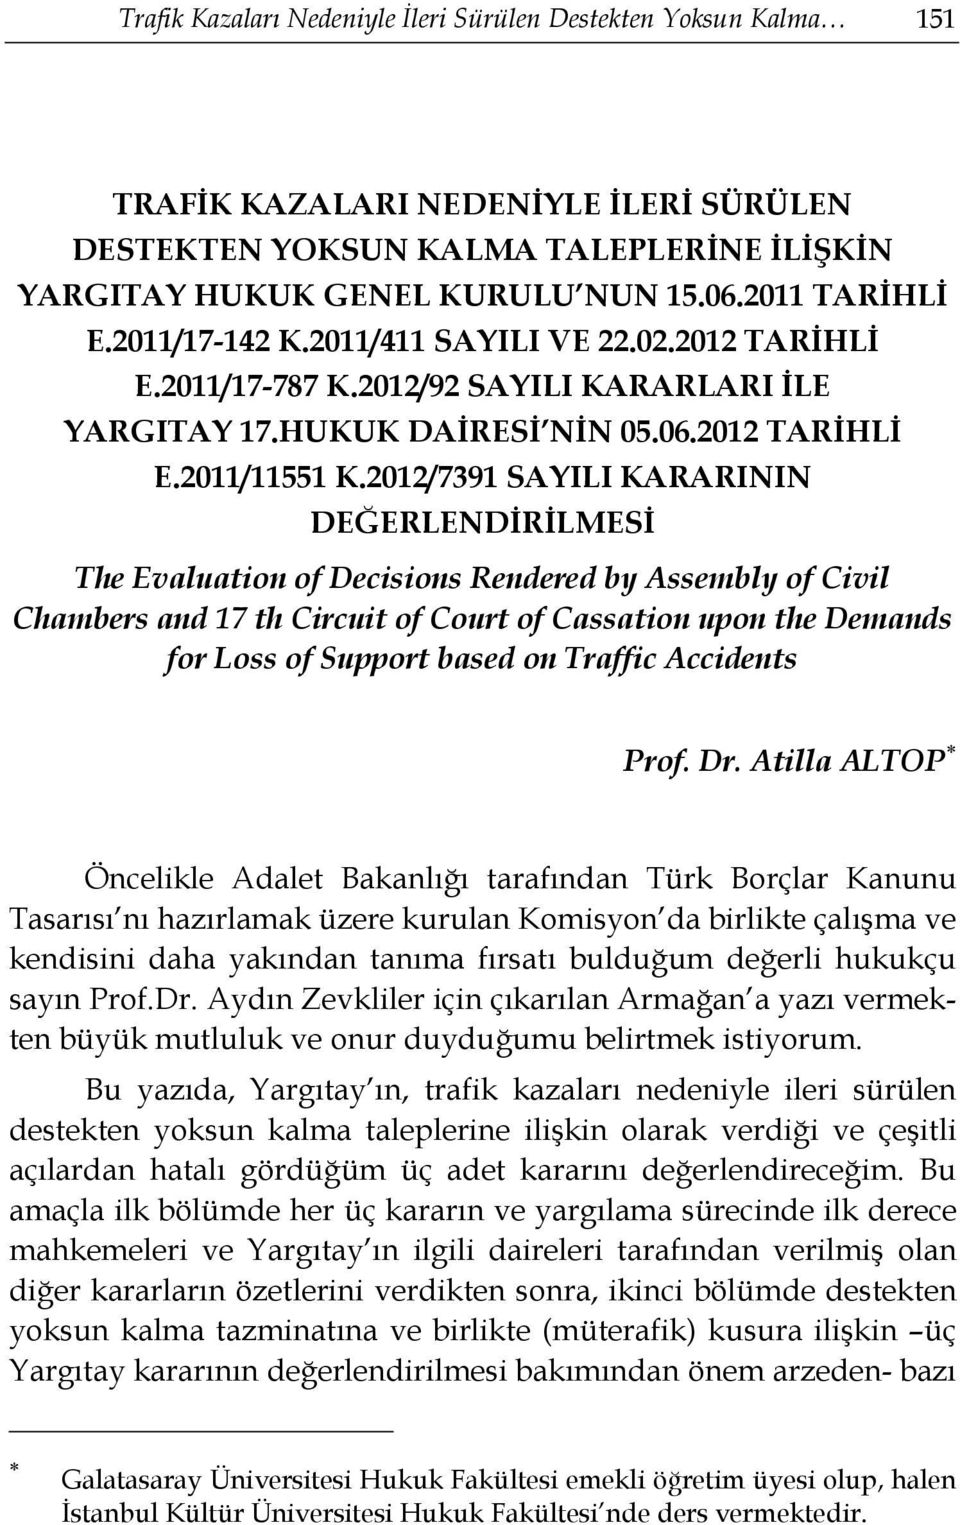 2012/7391 SAYILI KARARININ DEĞERLENDİRİLMESİ The Evaluation of Decisions Rendered by Assembly of Civil Chambers and 17 th Circuit of Court of Cassation upon the Demands for Loss of Support based on